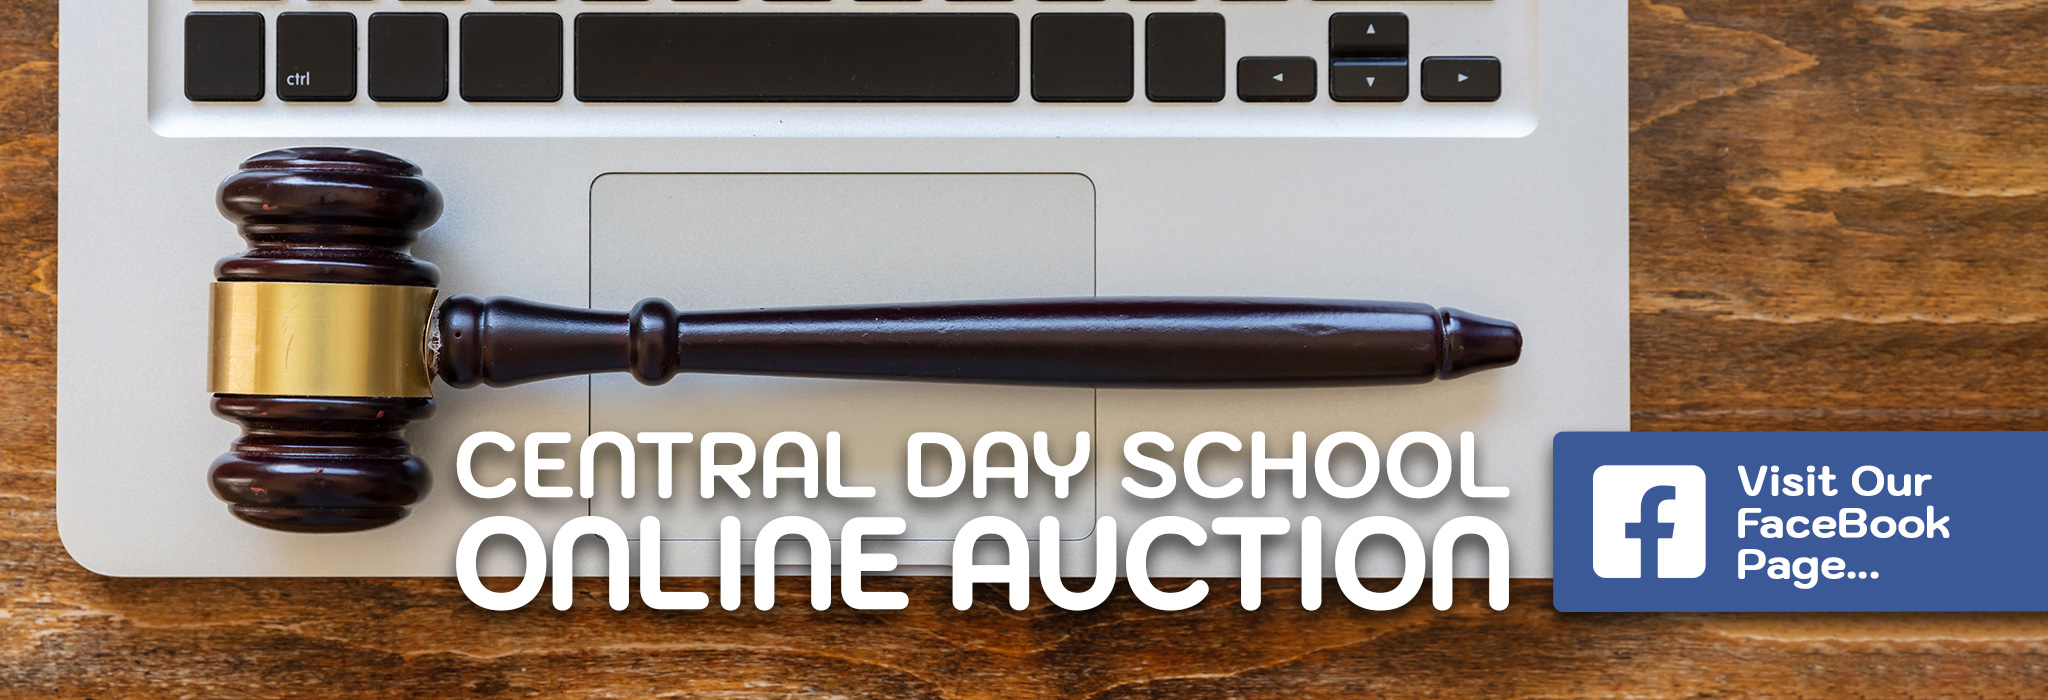 Dayschool Auction Background 2